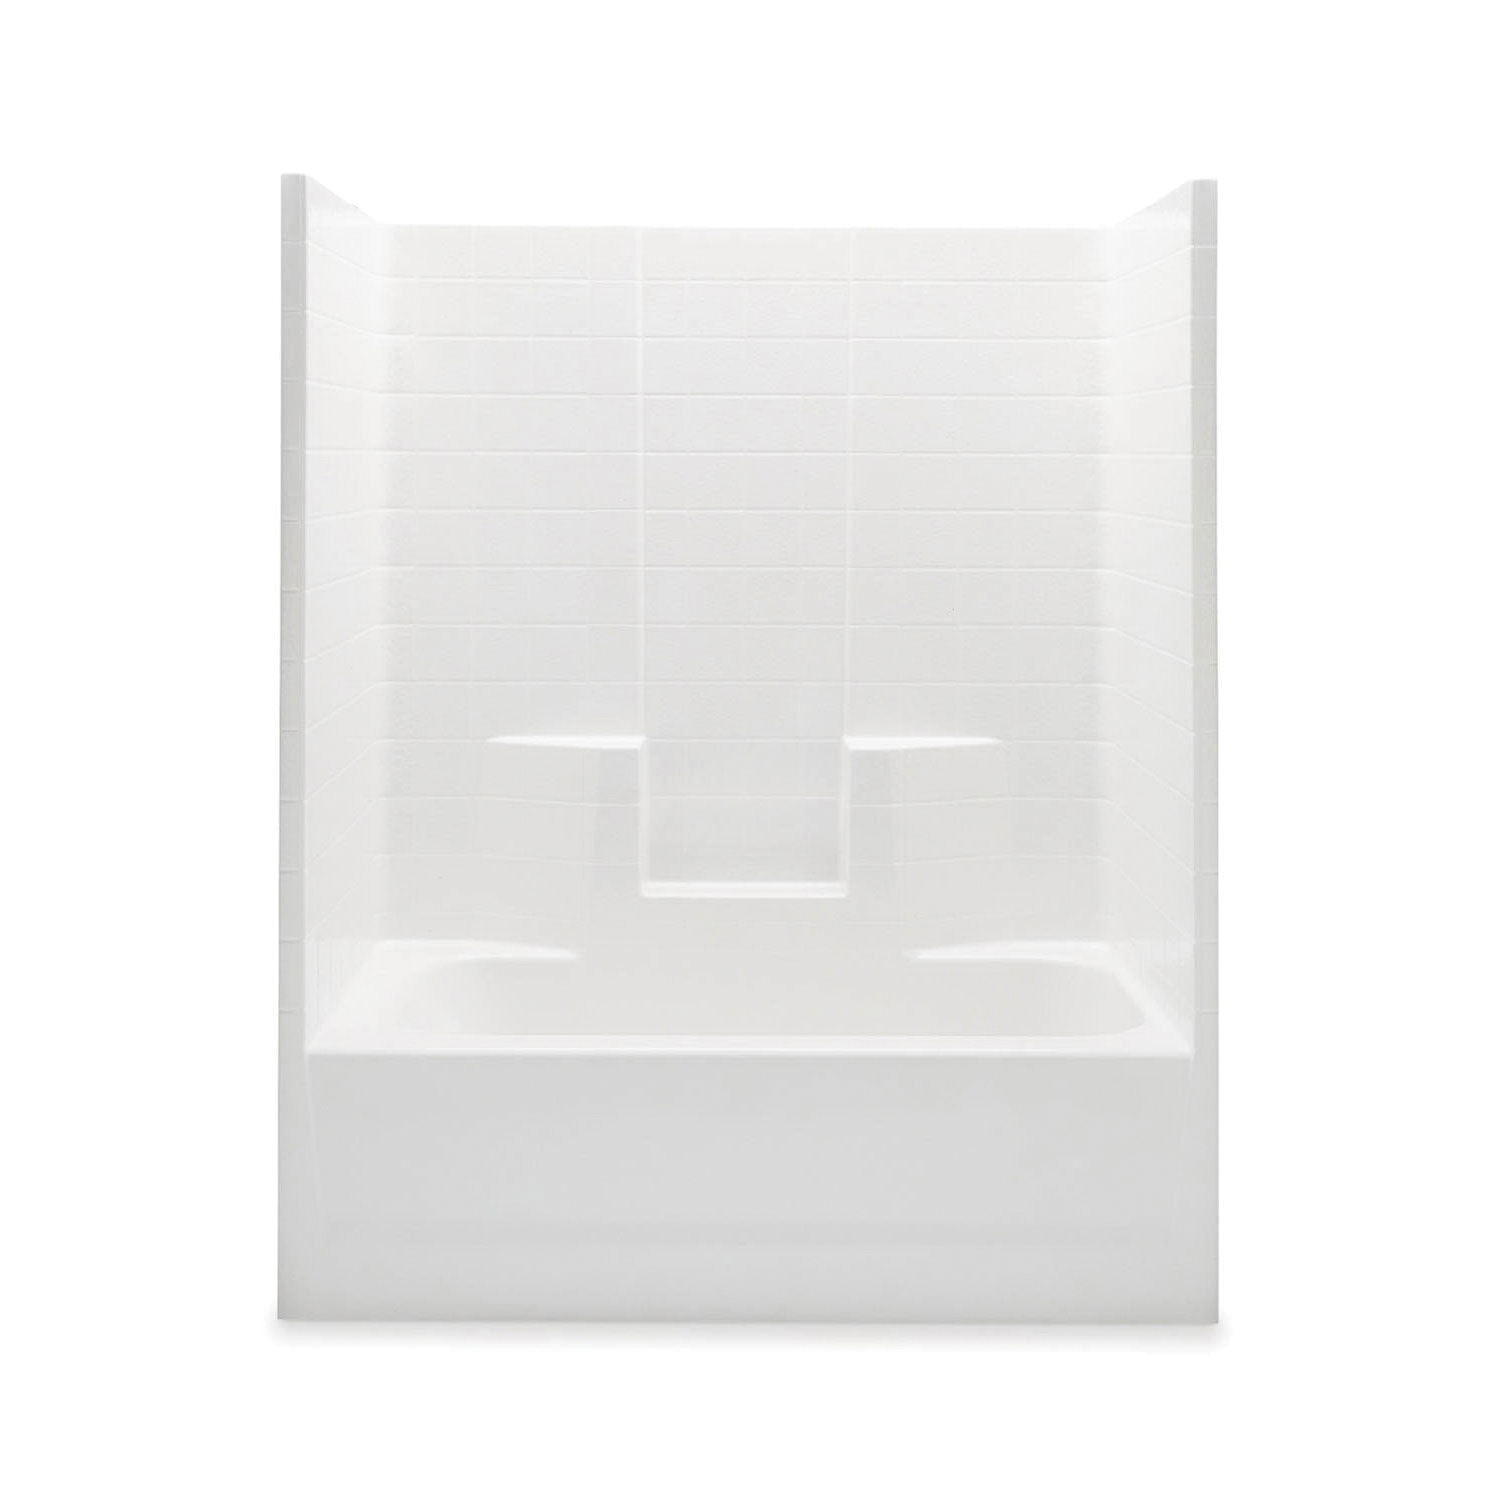 Aquatic 2603CTWML-WH Tub Shower, Everyday, 60 in W x 75 in H, Gel-Coated/White, Domestic